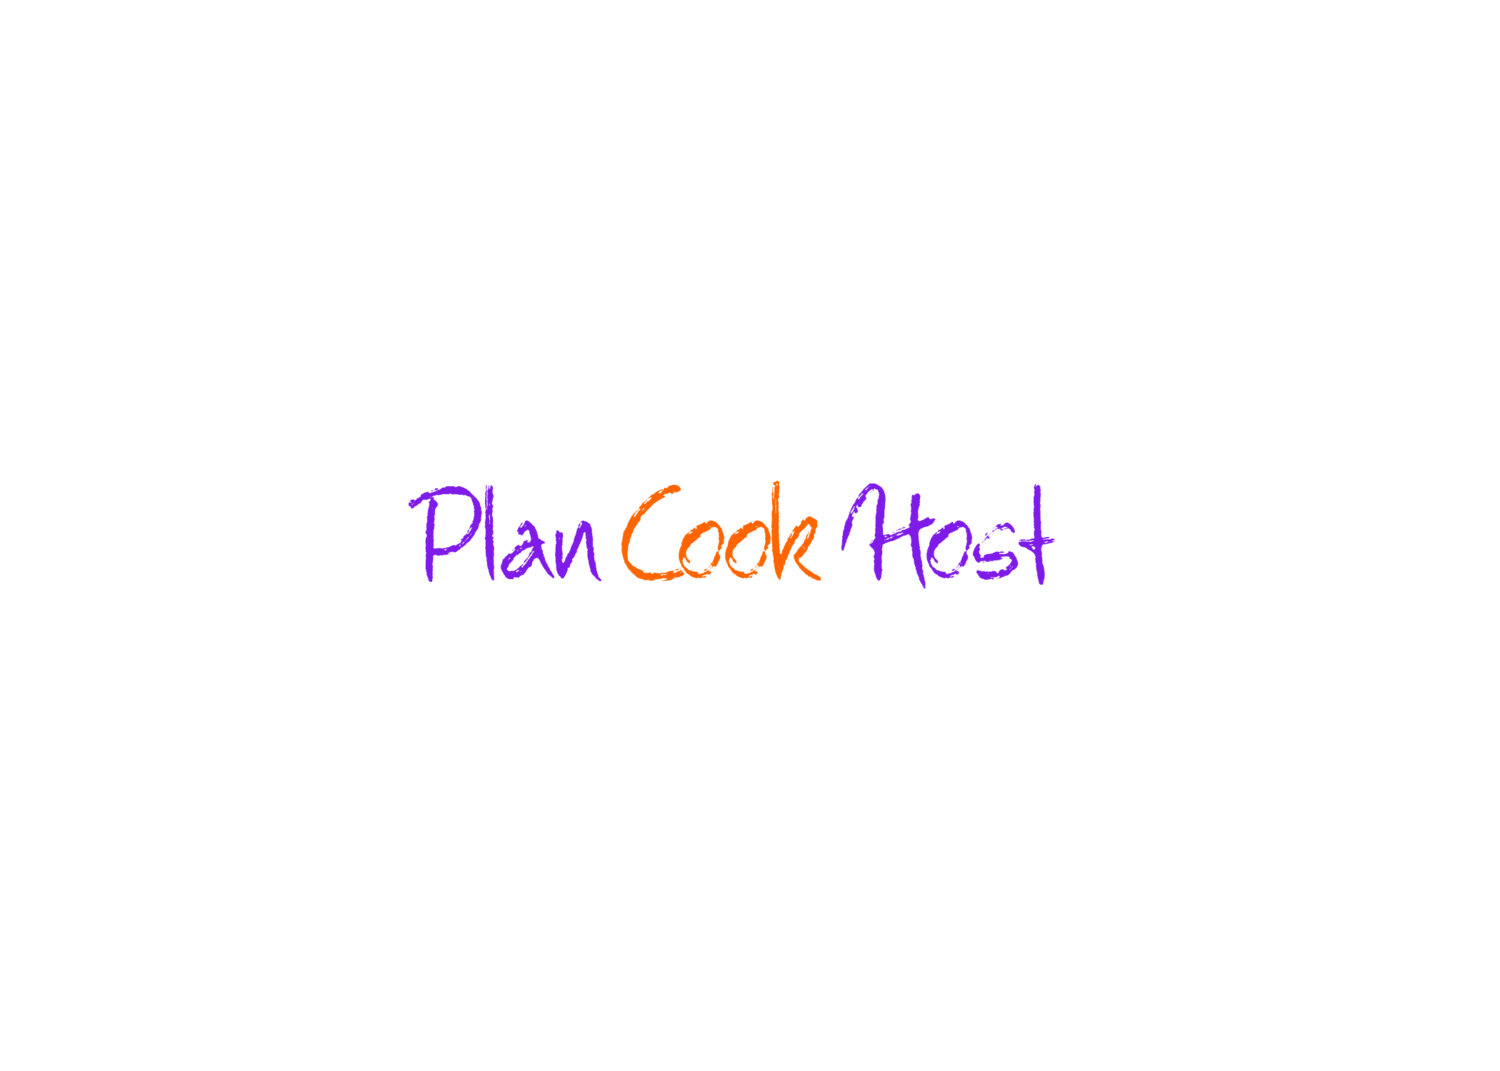 Atlanta Meal Delivery | PlanCookHost